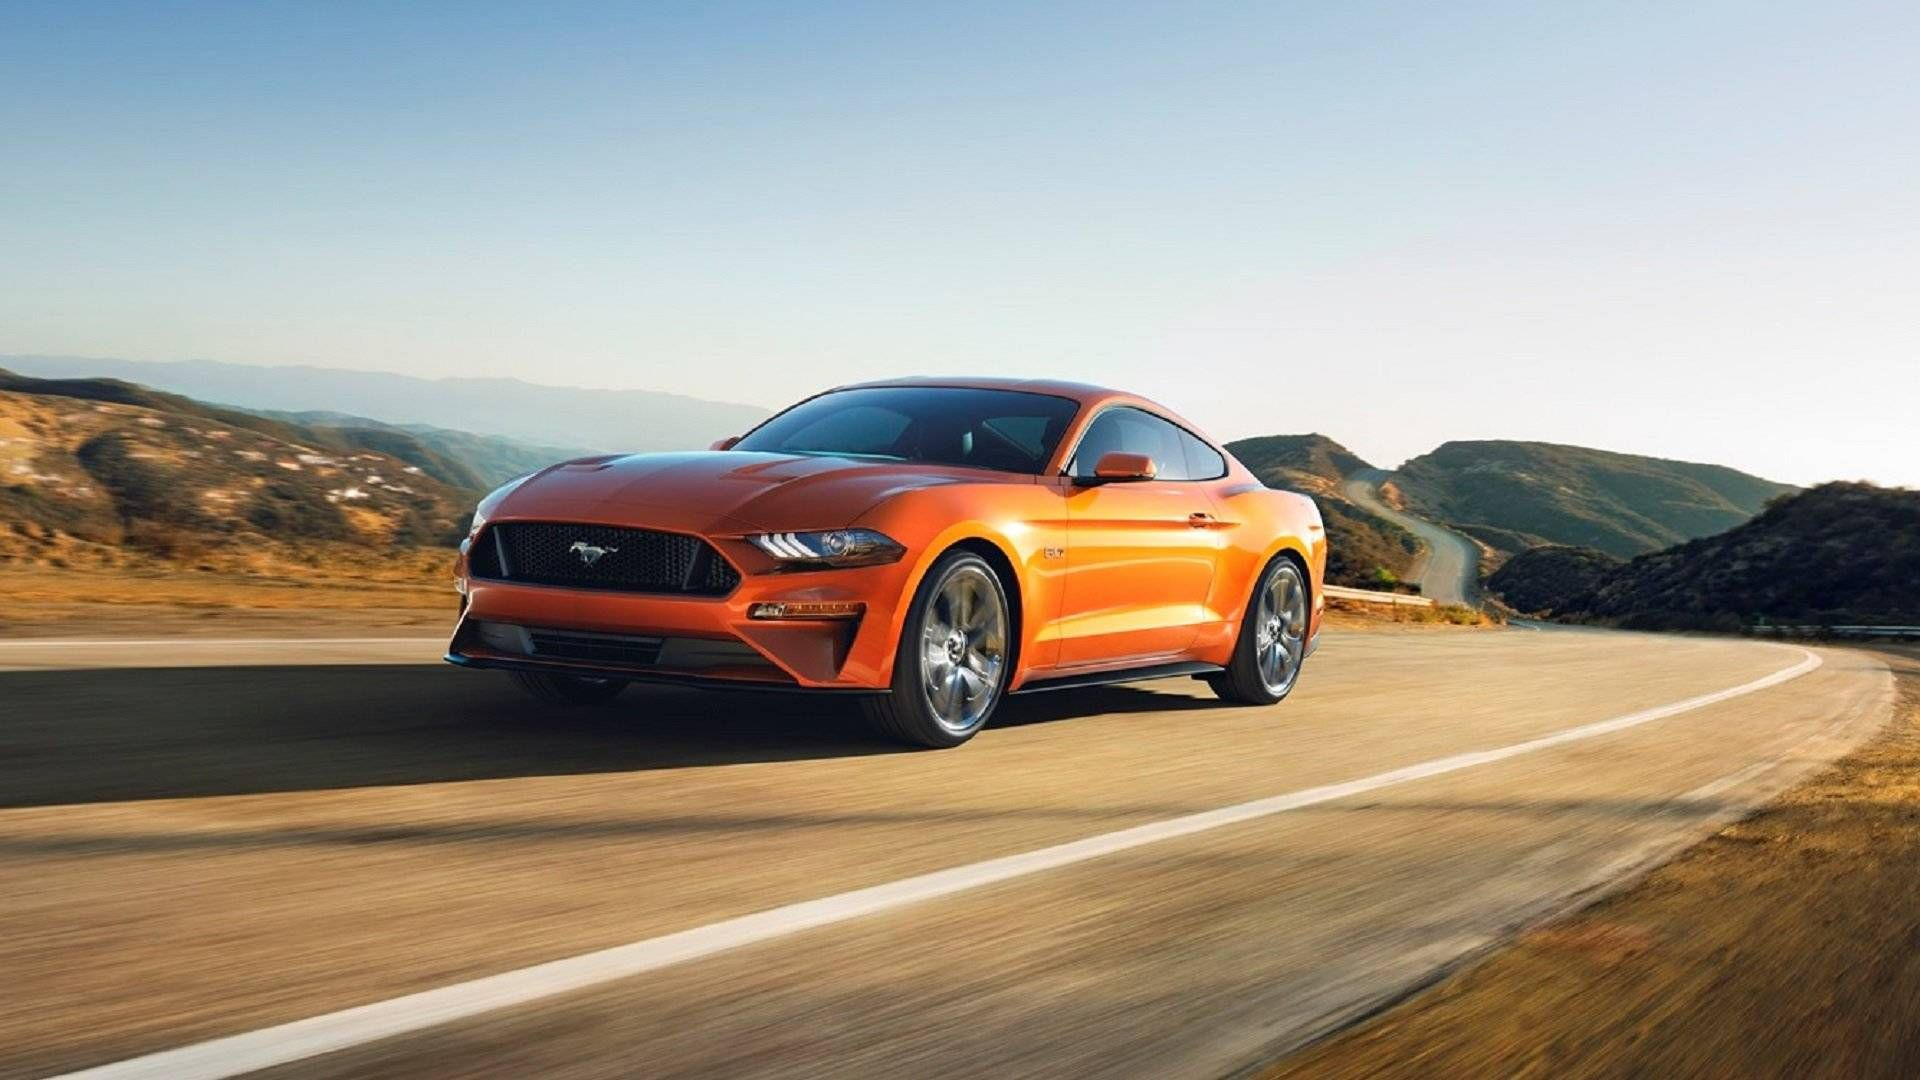 2018 Ford Mustang Gt Makes 460 Hp Does 0 60 Mph In Under 4 Seconds Via The Drive New Ford Mustang Mustang Ecoboost Mustang Gt